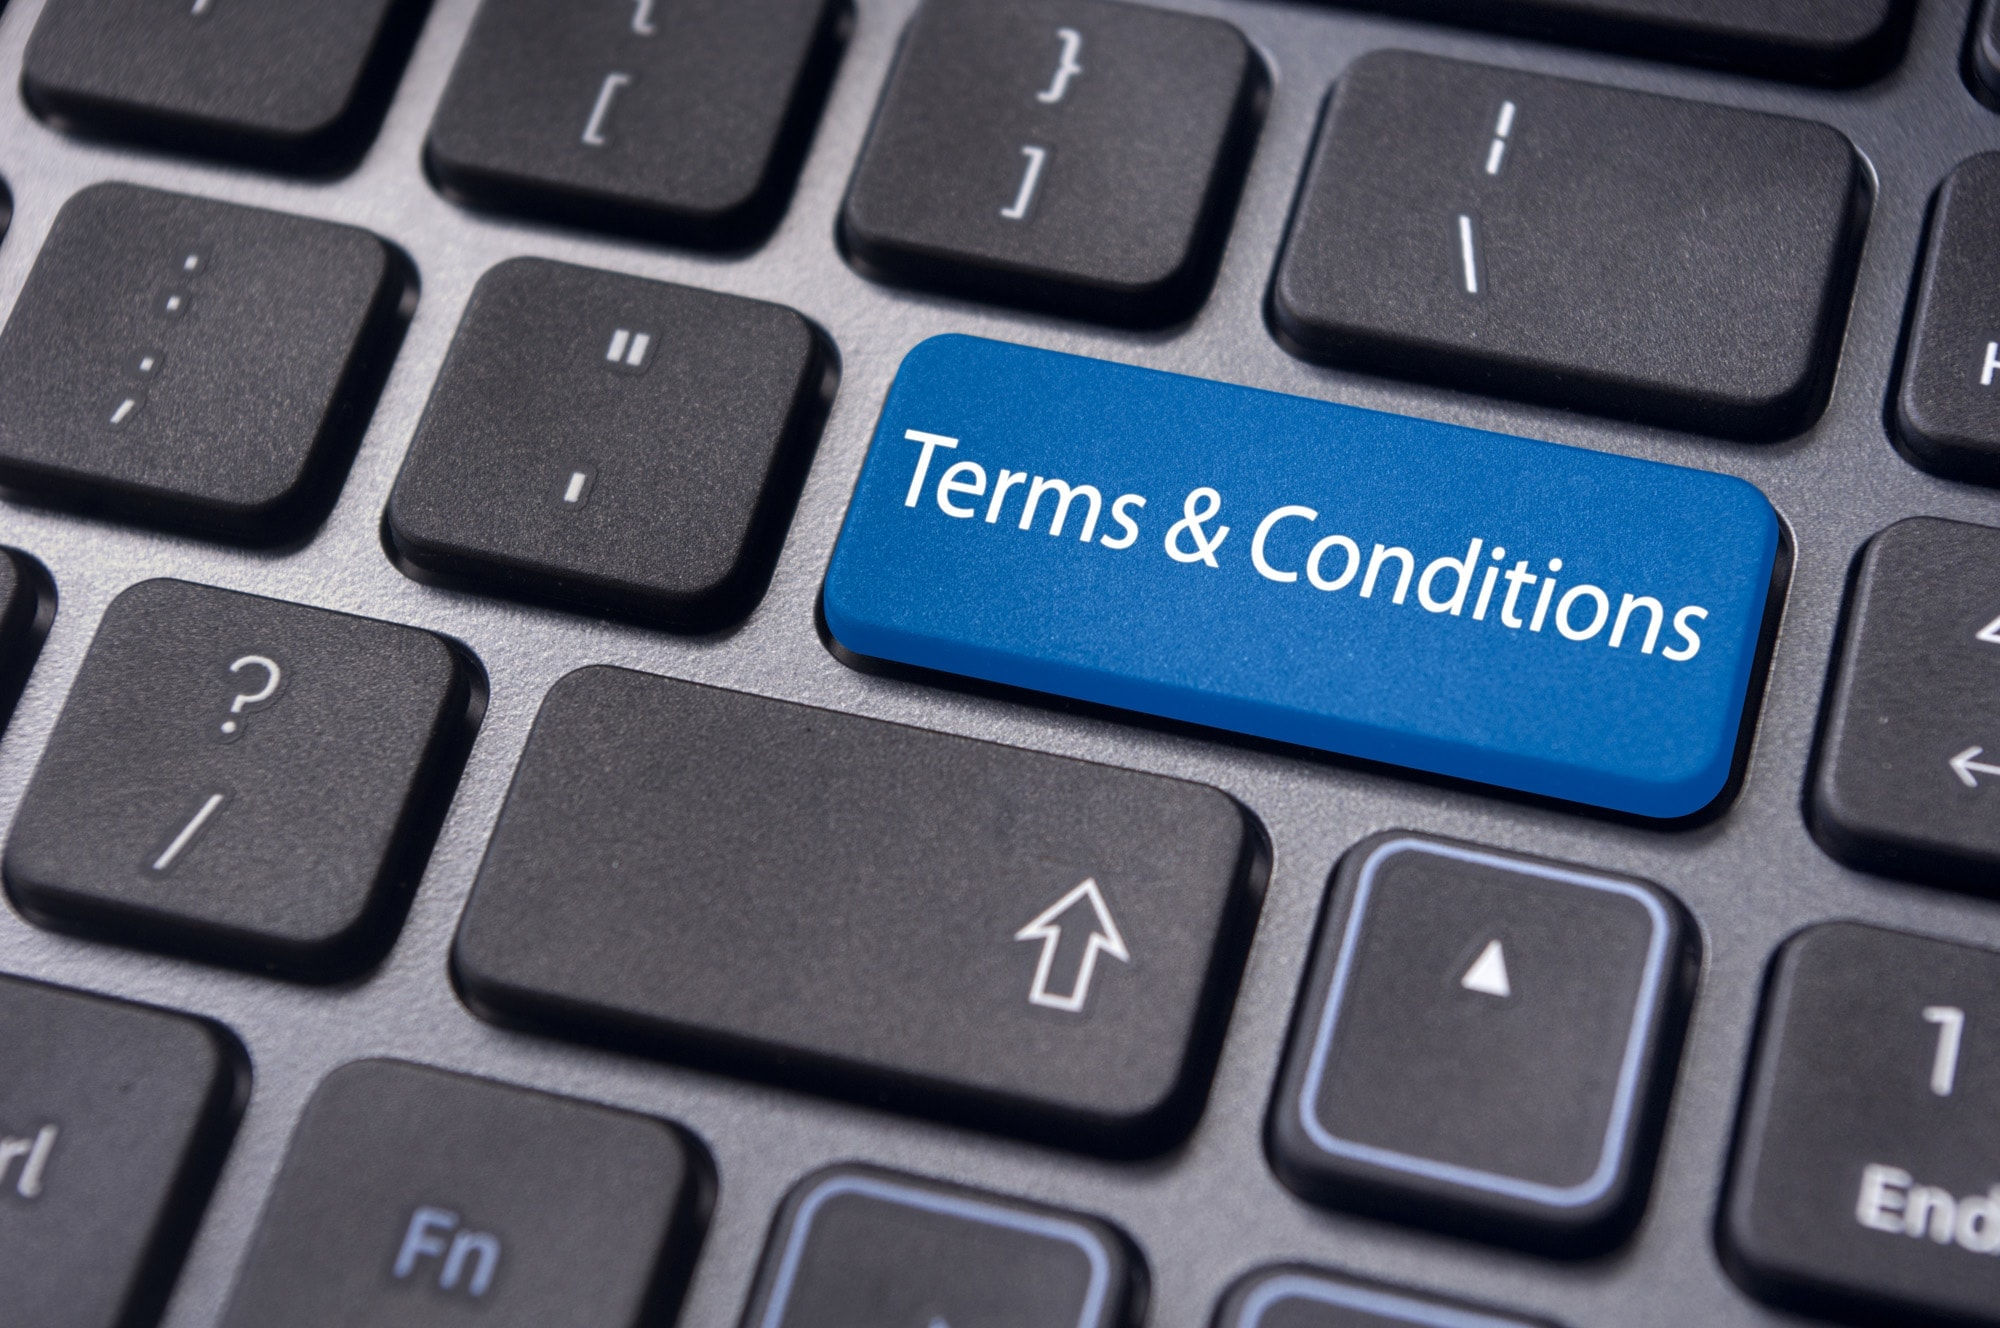 Terms and Conditions keyboard